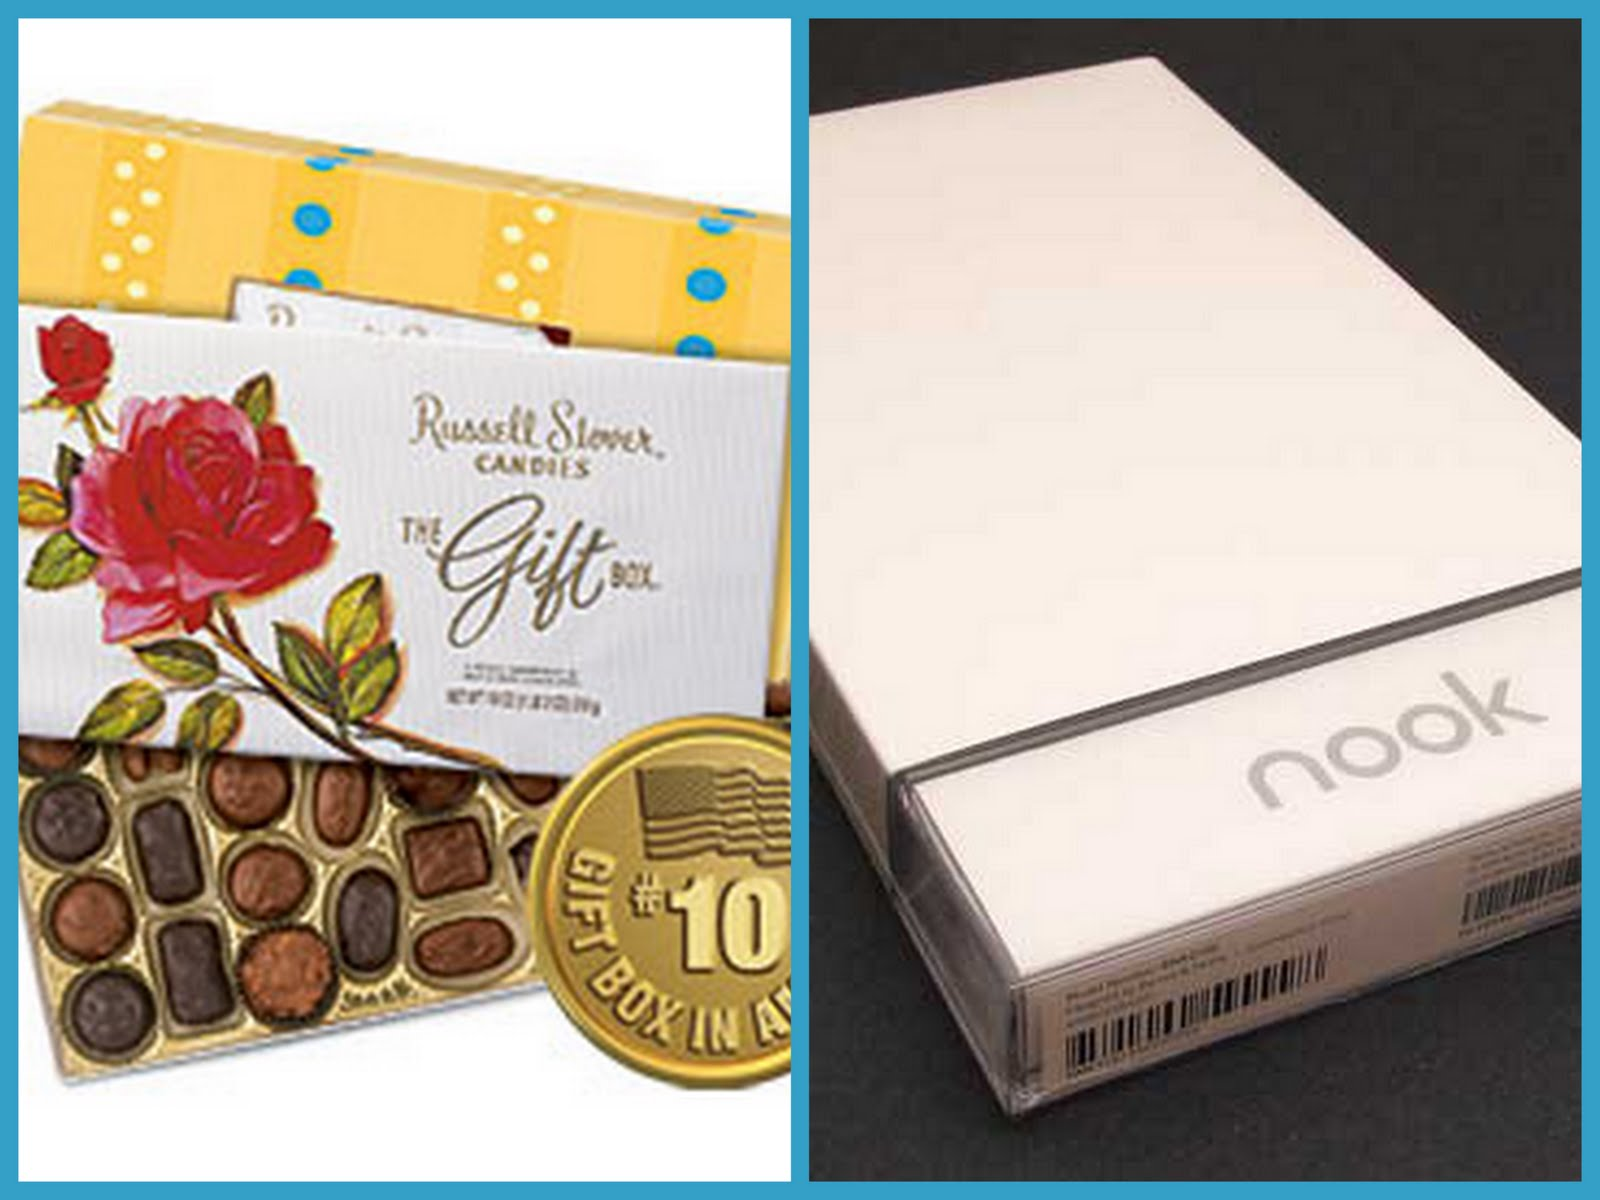 How to use a gift card on nook tablet